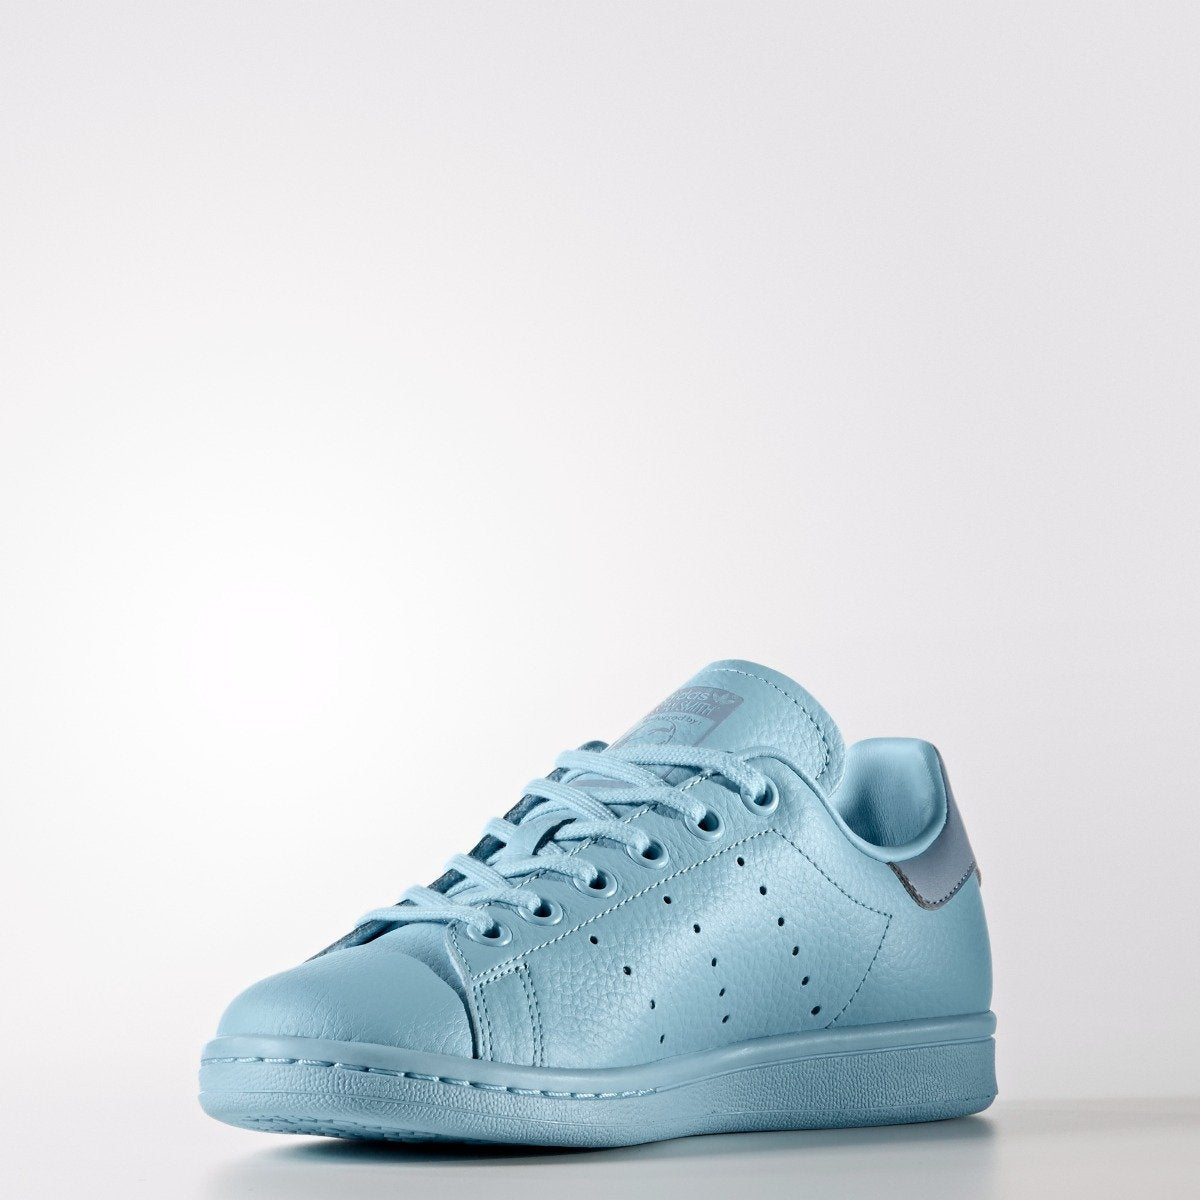 brand new a1071 7760b Kid's adidas Originals Stan Smith Shoes Ice Blue BY9983 ...